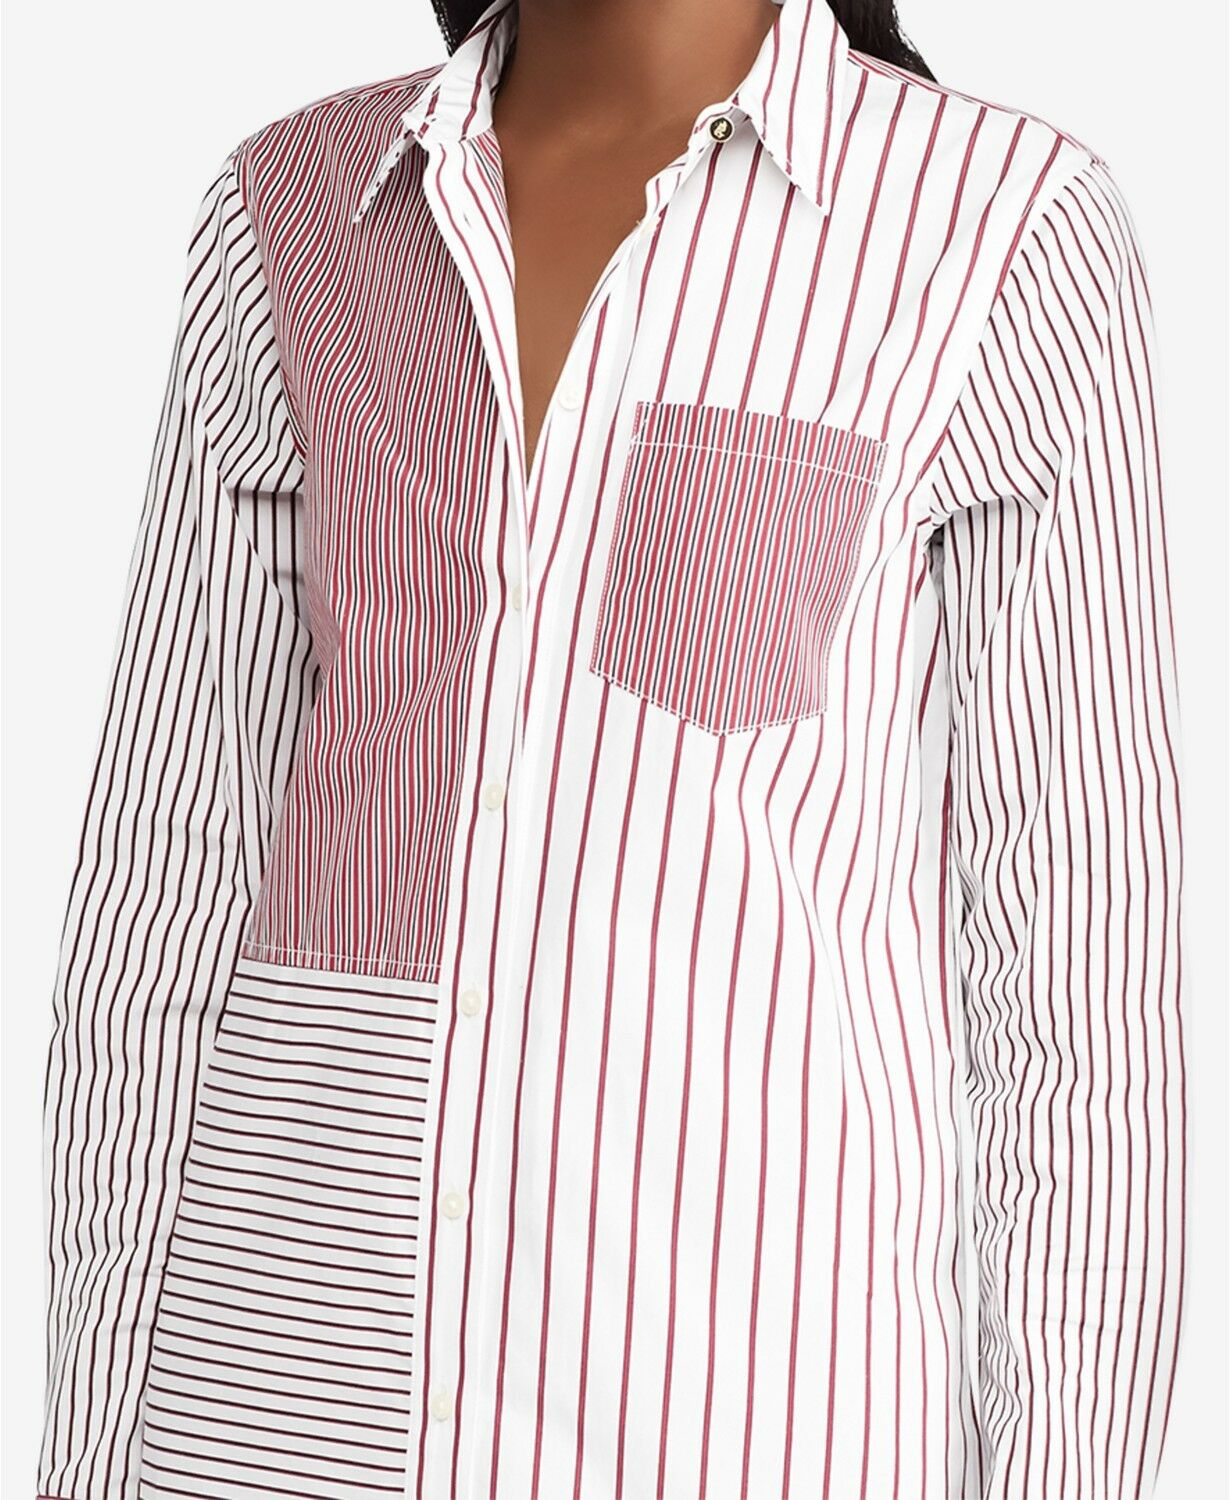 Ralph Lauren Red White Striped Cotton Shirtdress Womens size size size Large NWT 829149